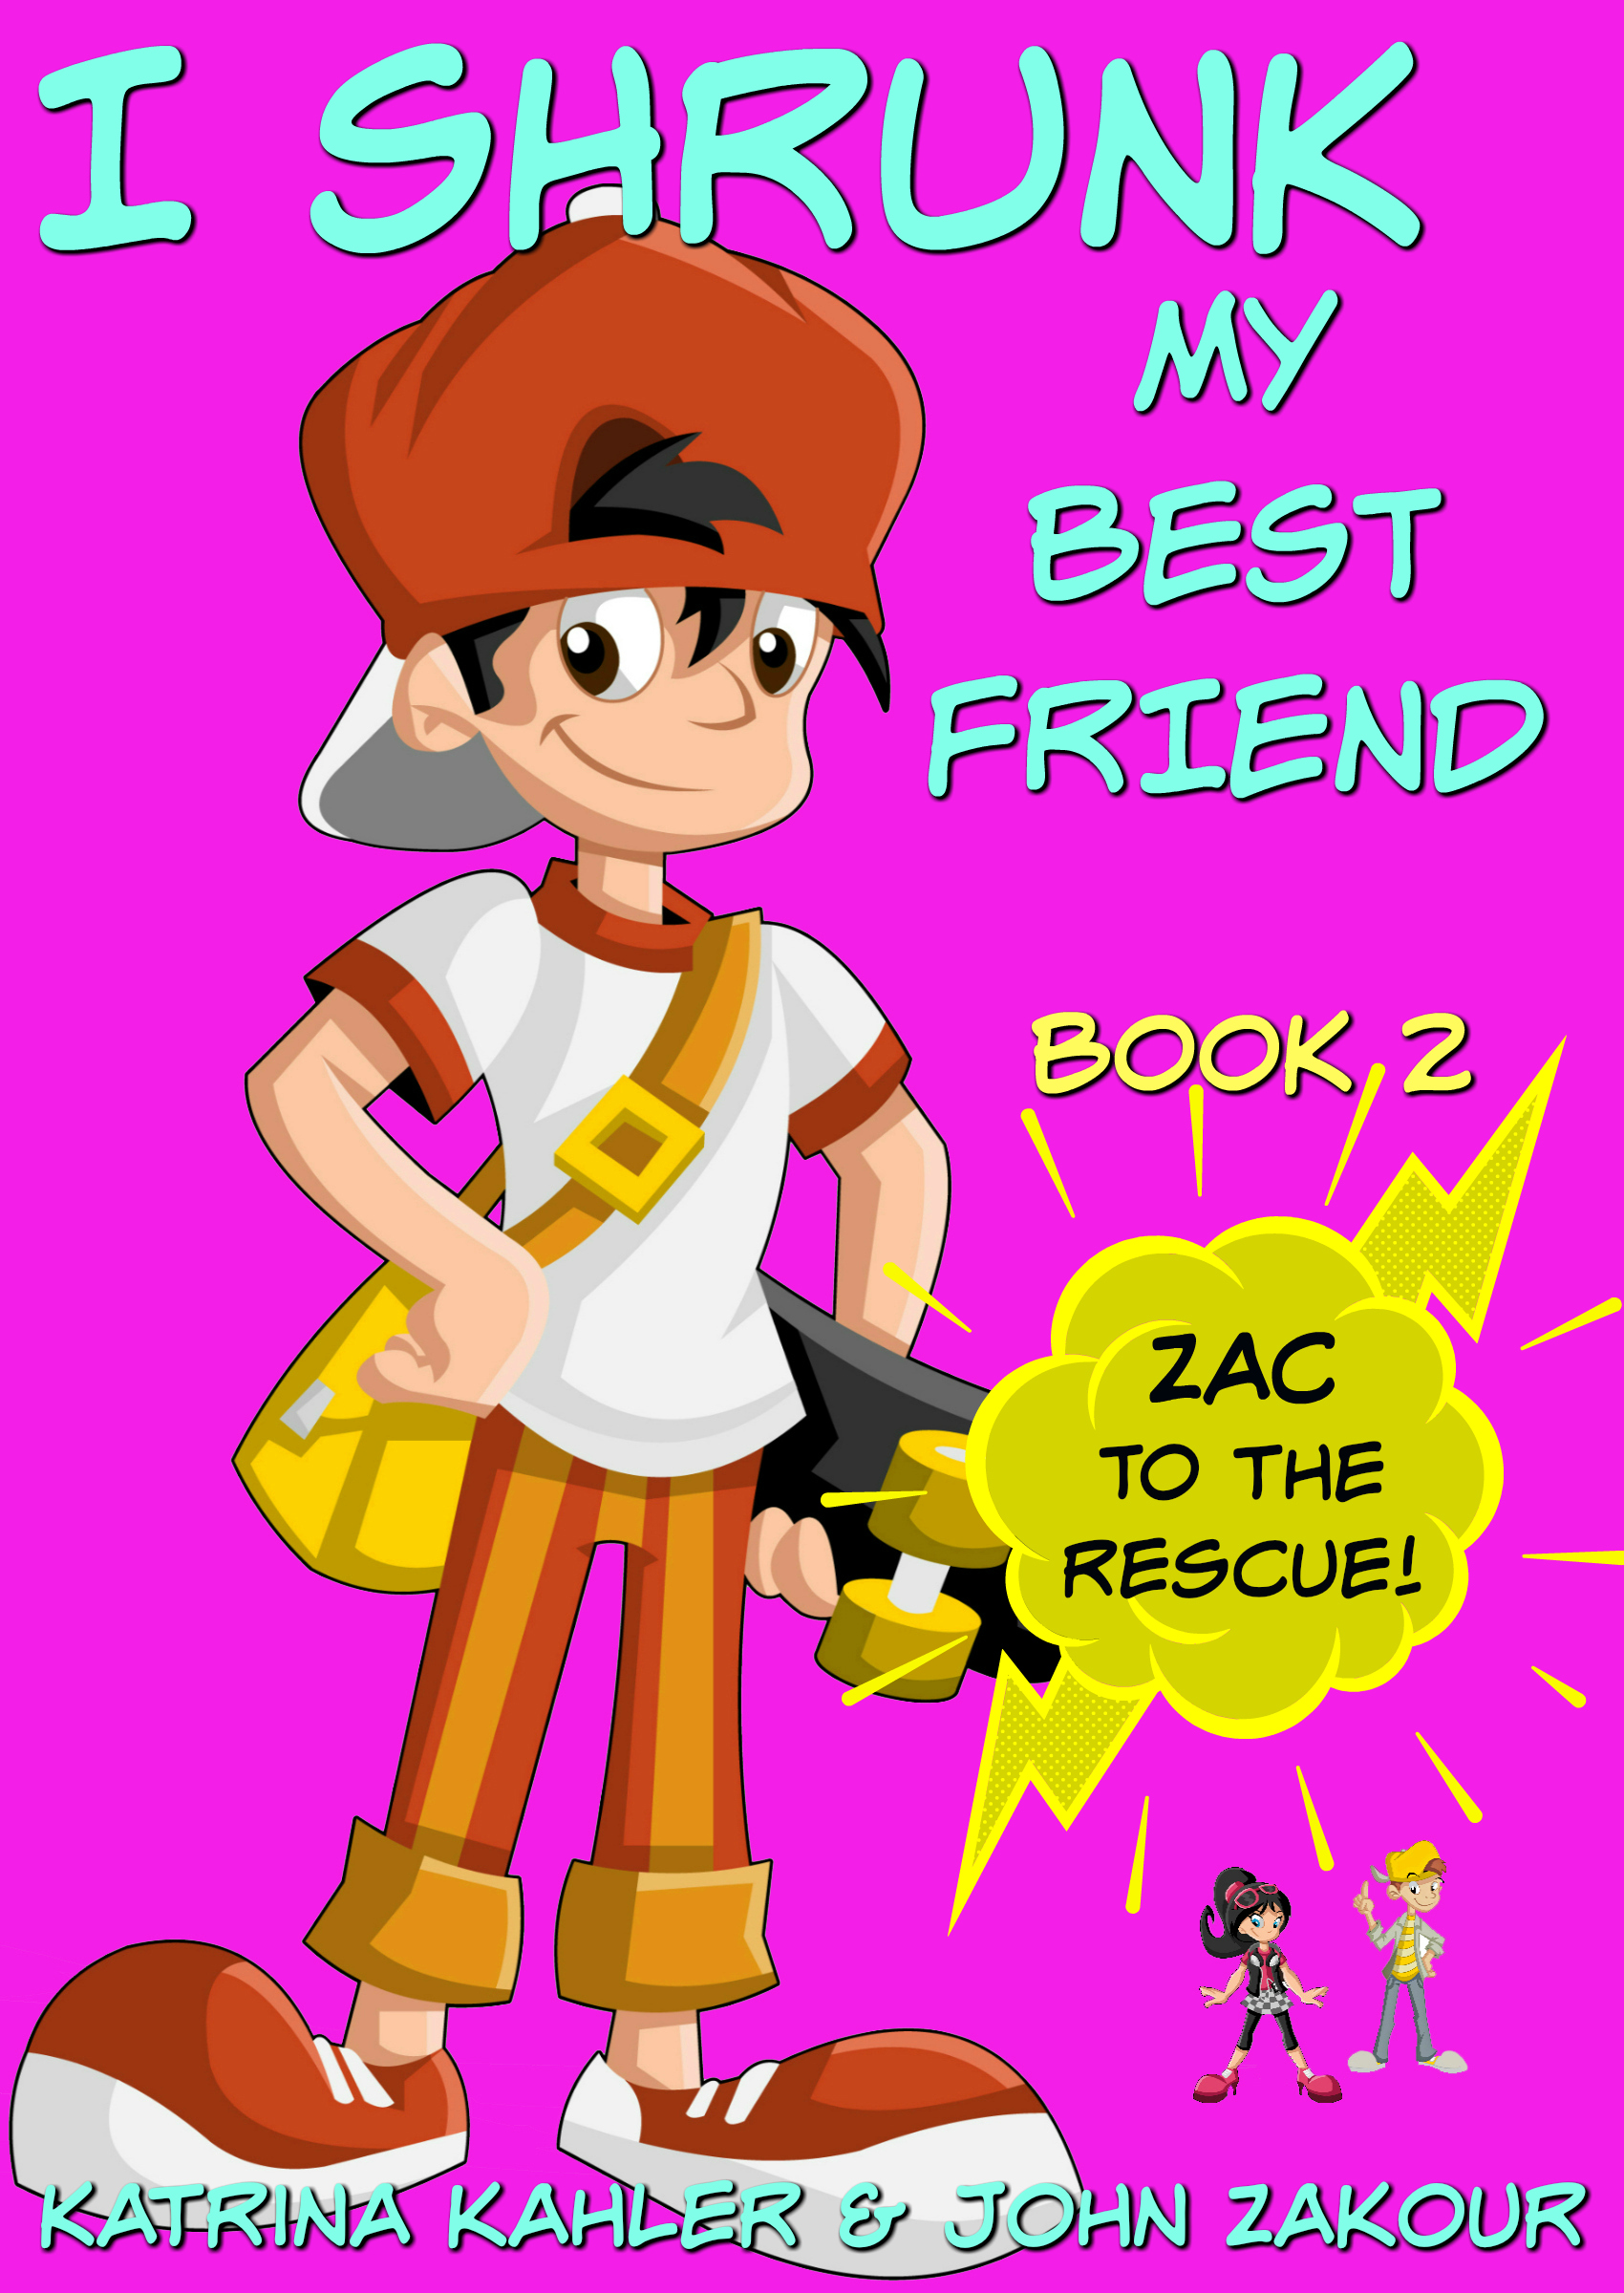 I shrunk my best friend! - book 2 - zac to the rescue!: books for girls ages 9-12